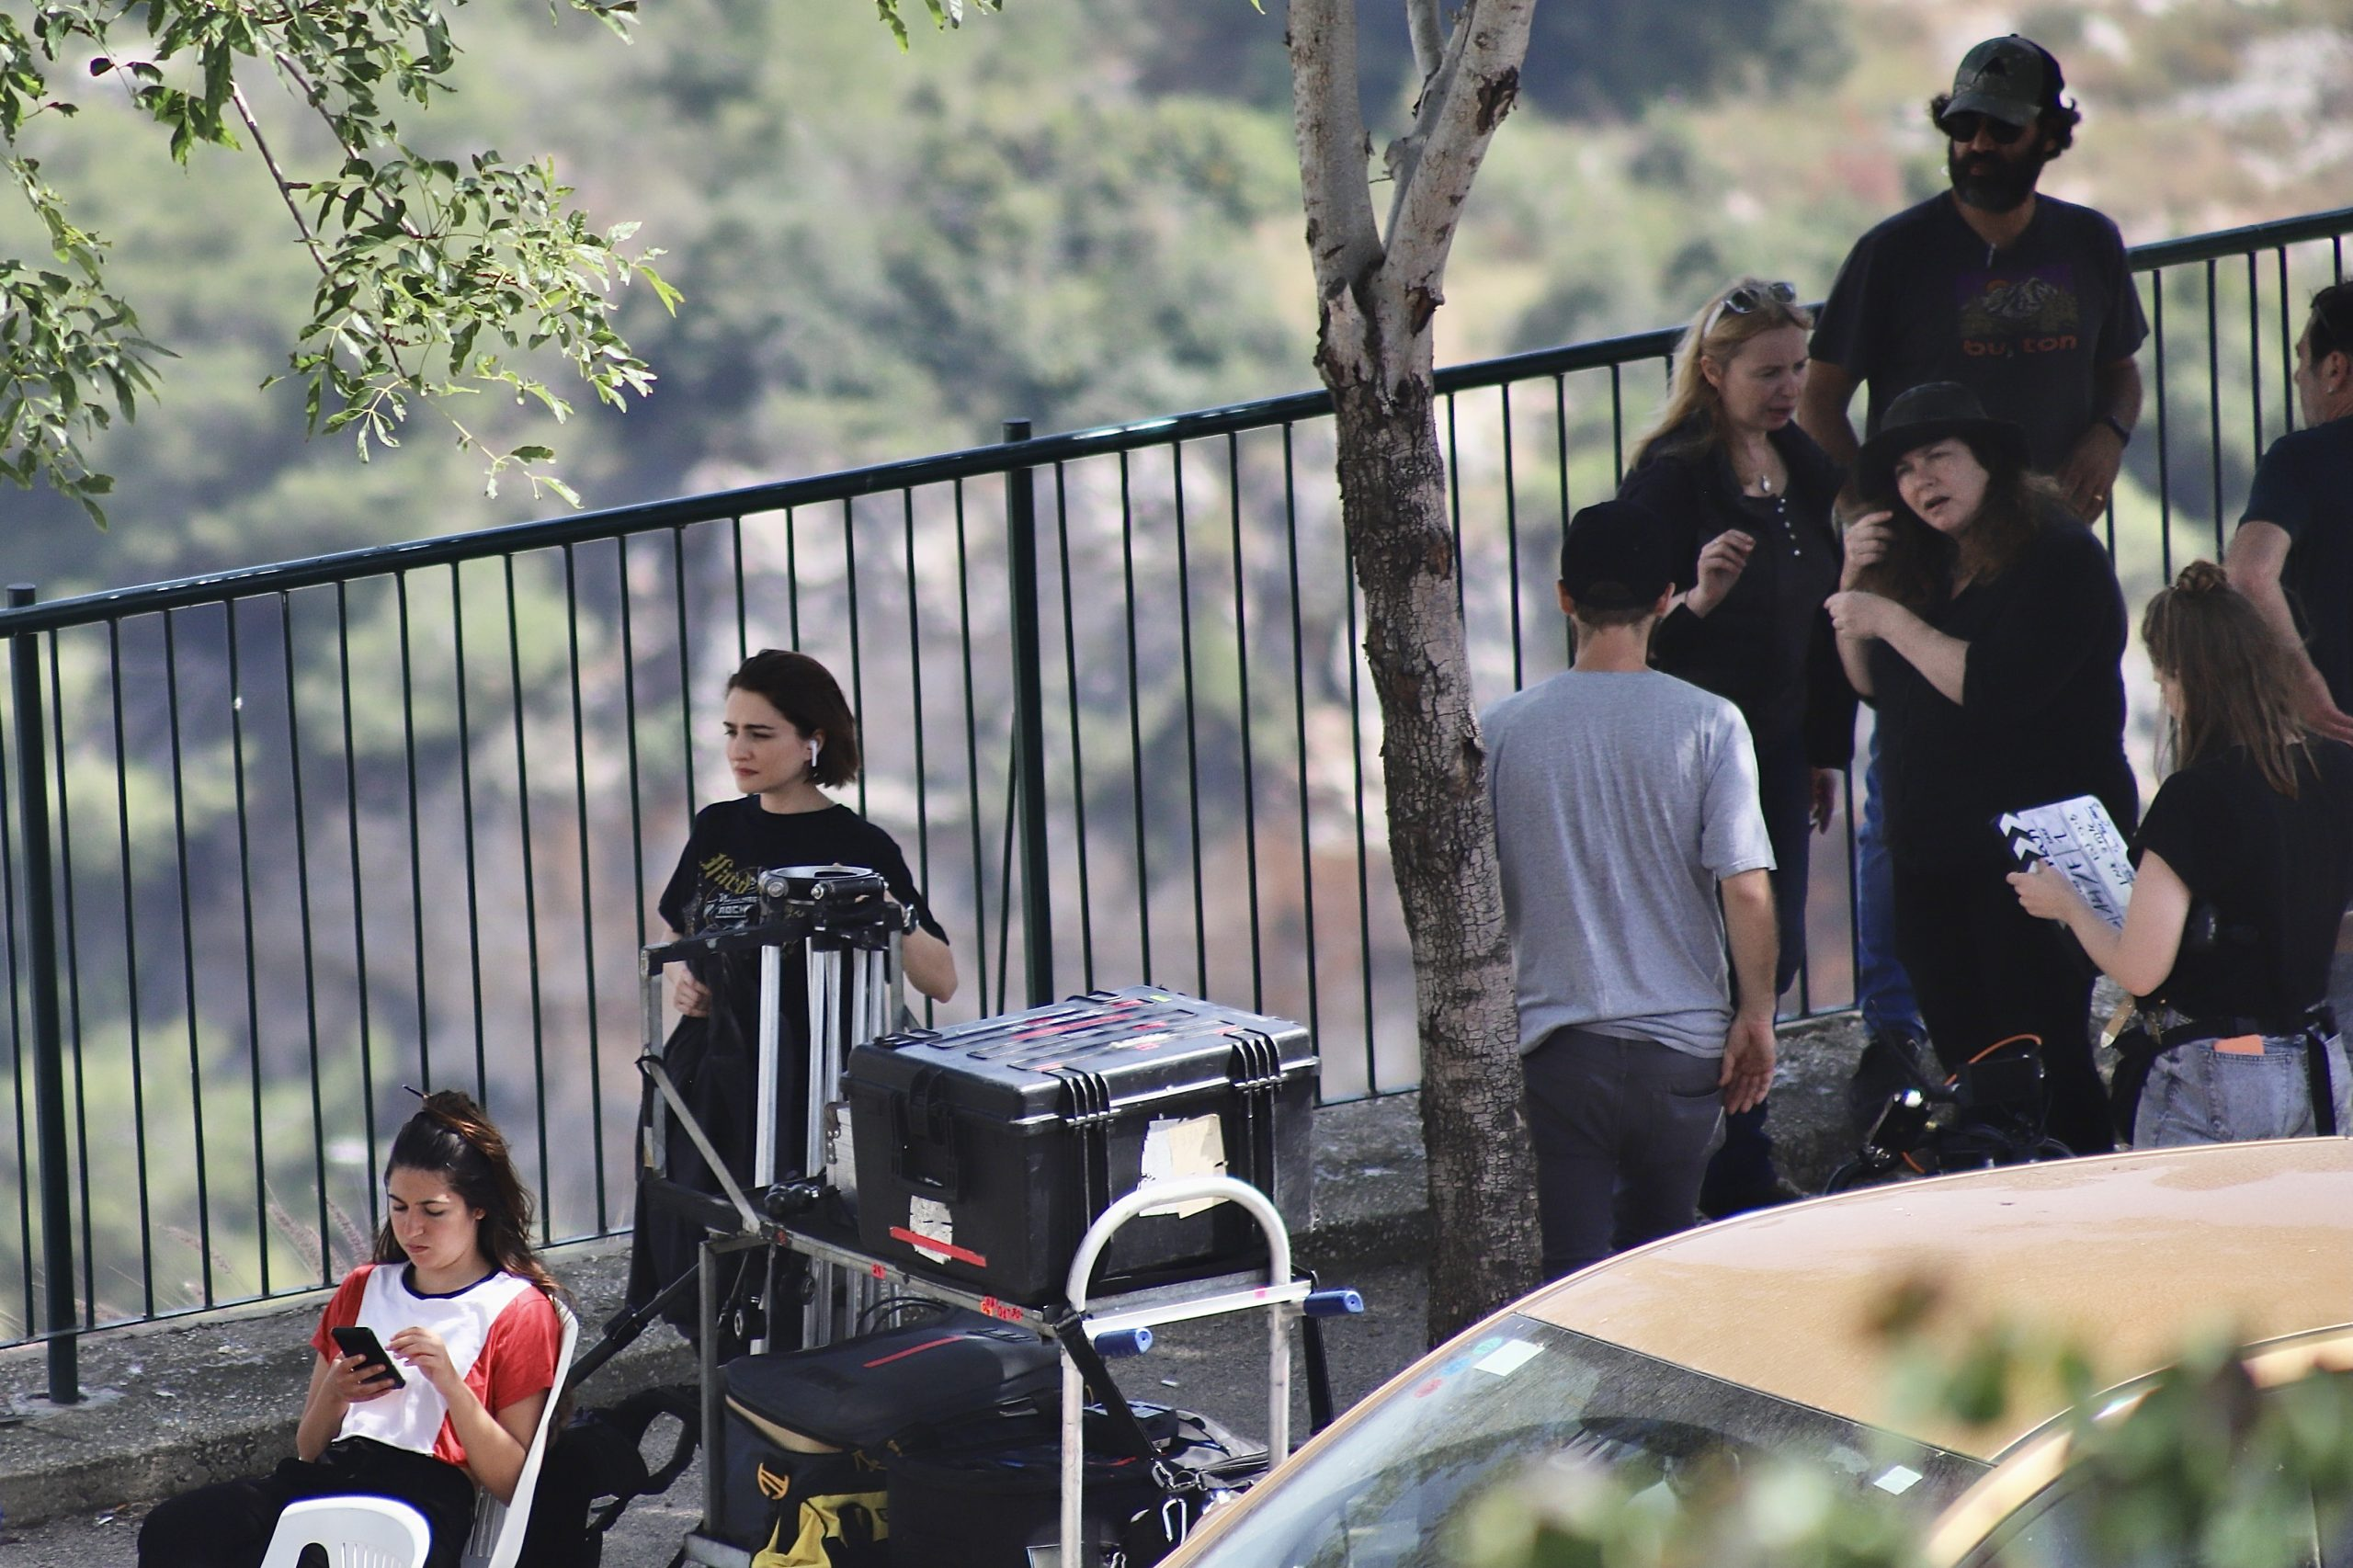 Ania Bukstein, the Israeli actress who played  the Red Priestess in Games of Thrones, at a shooting scene in Haifa